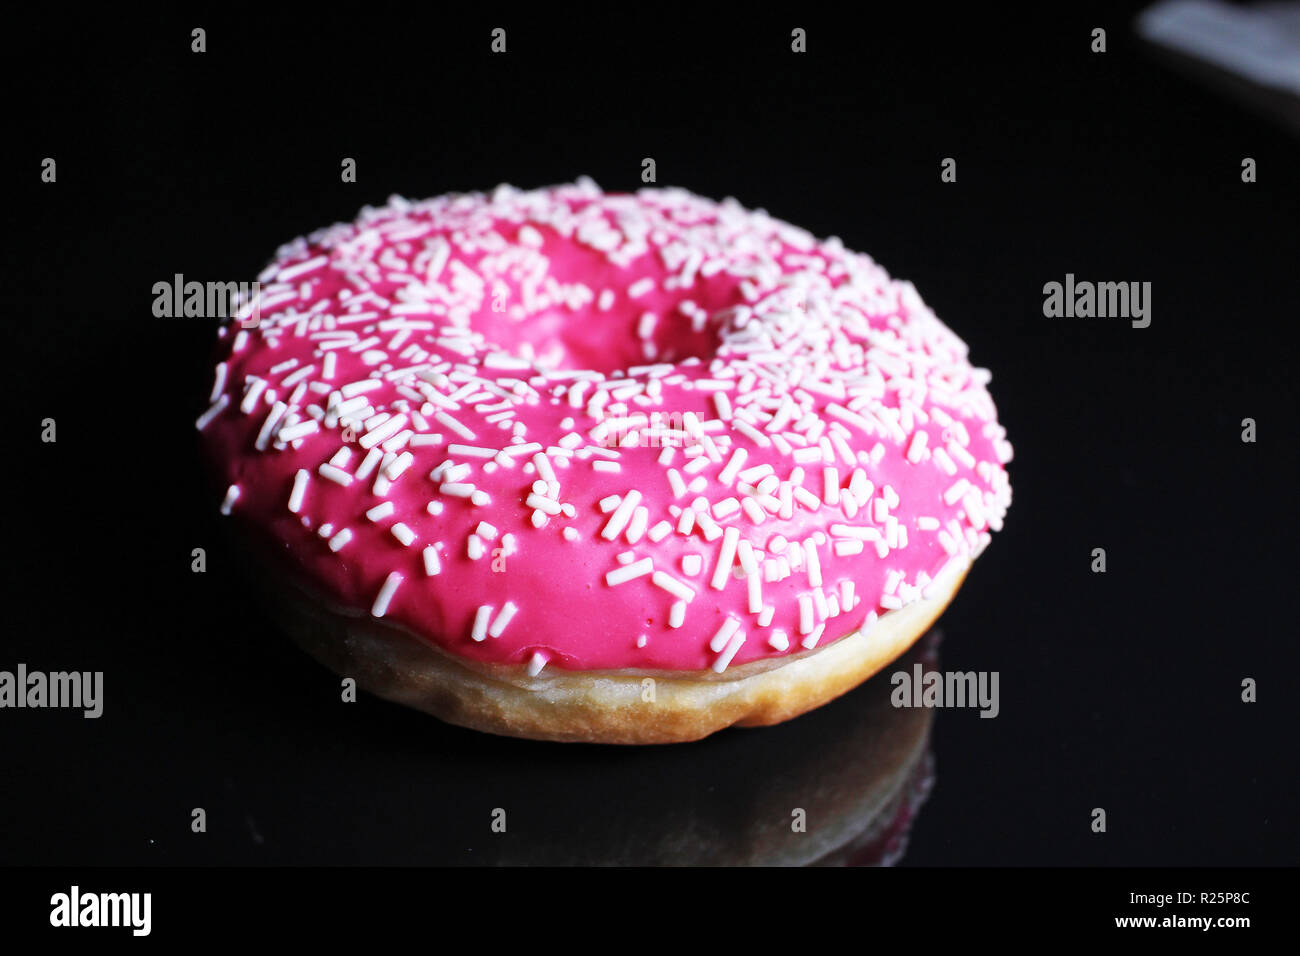 Pink donut. Donuts stock photo - Stock Image